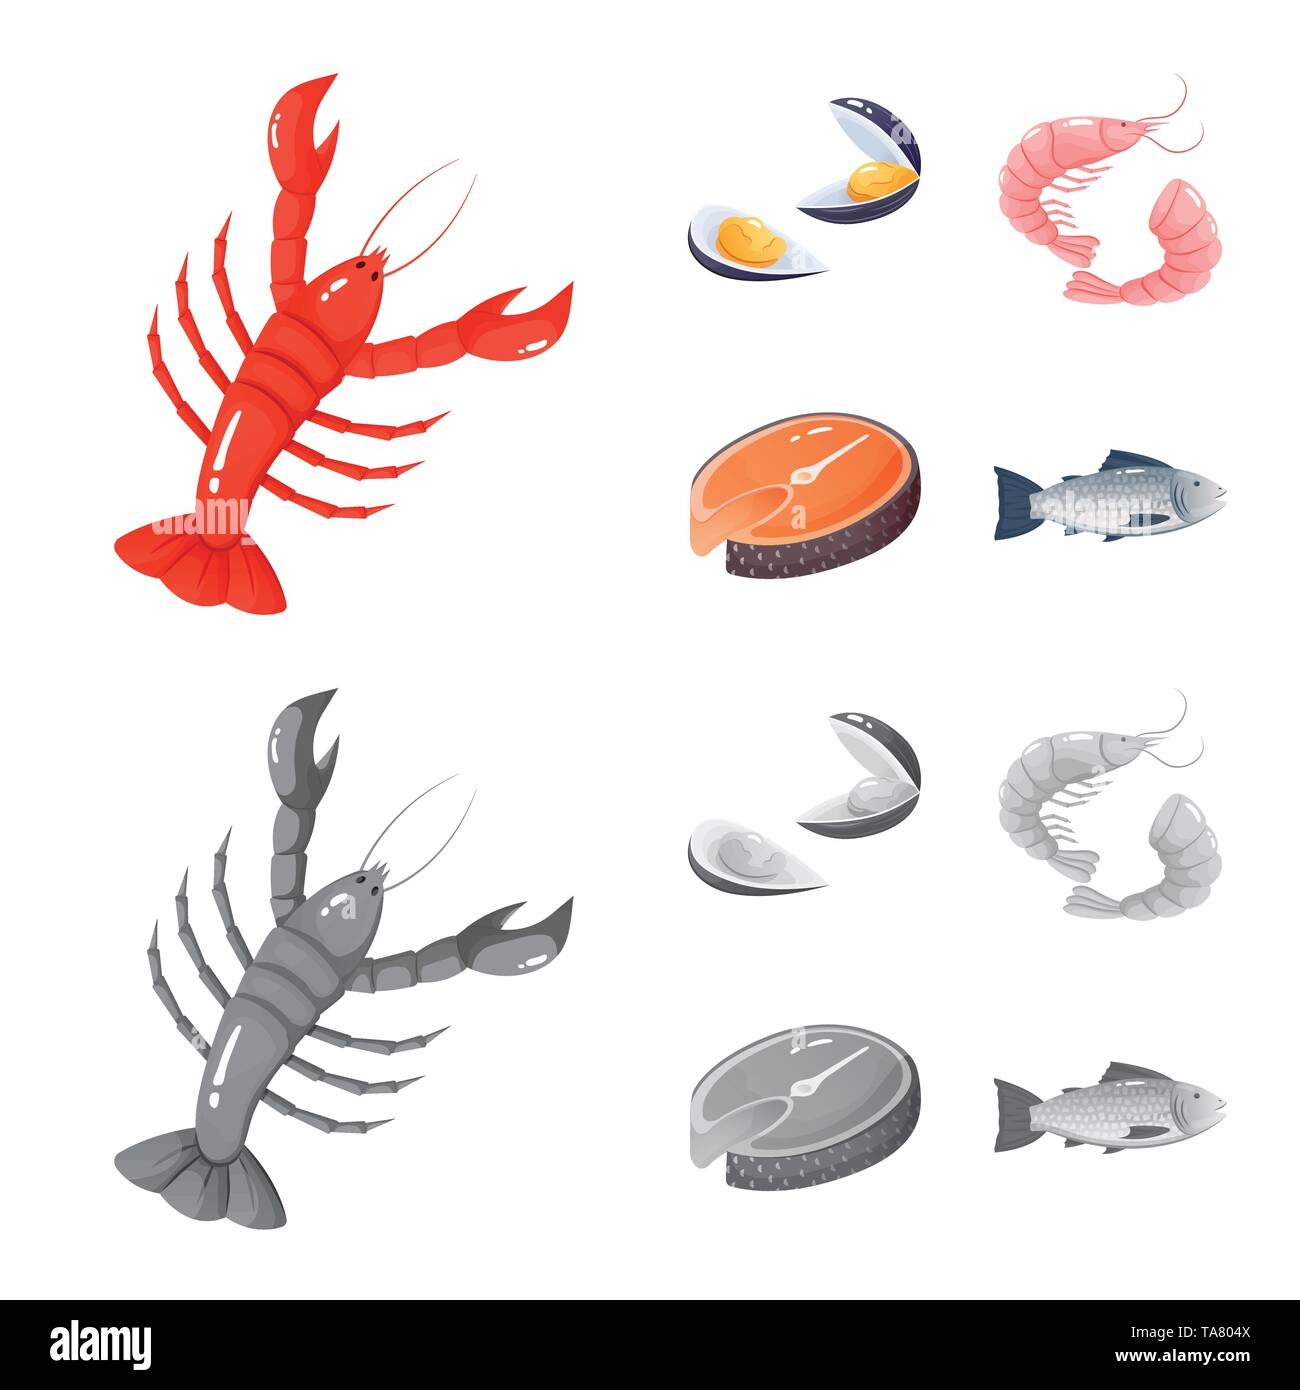 Vector illustration of fresh  and restaurant logo. Collection of fresh  and marine   stock symbol for web. - Stock Image